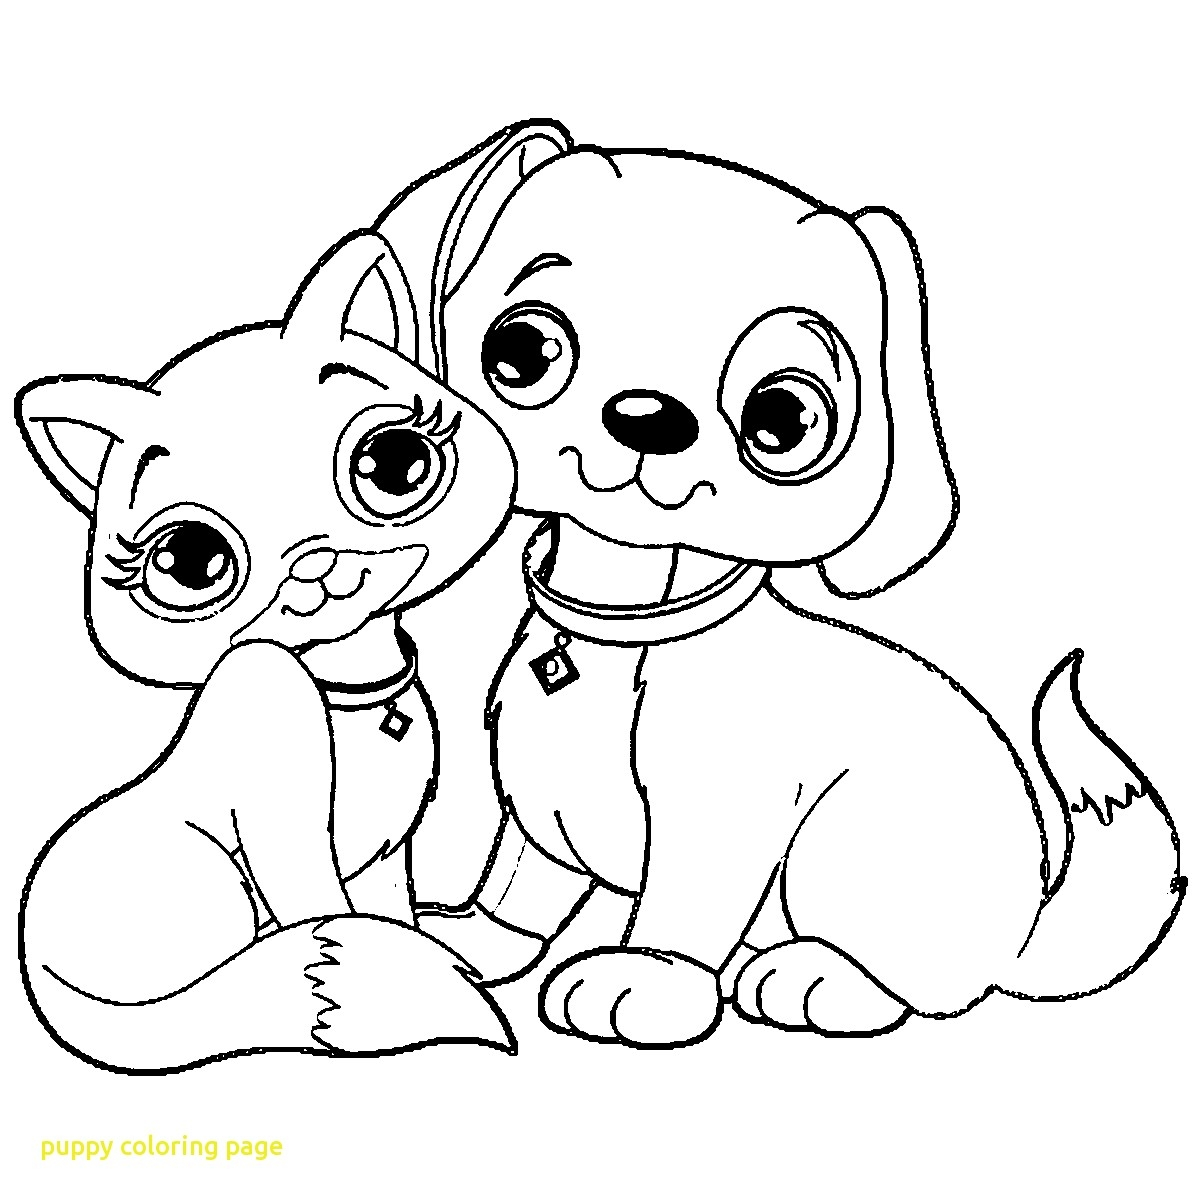 1203x1203 Exploit Coloring Pages Of Cute Dogs And Puppies Valentine Animal